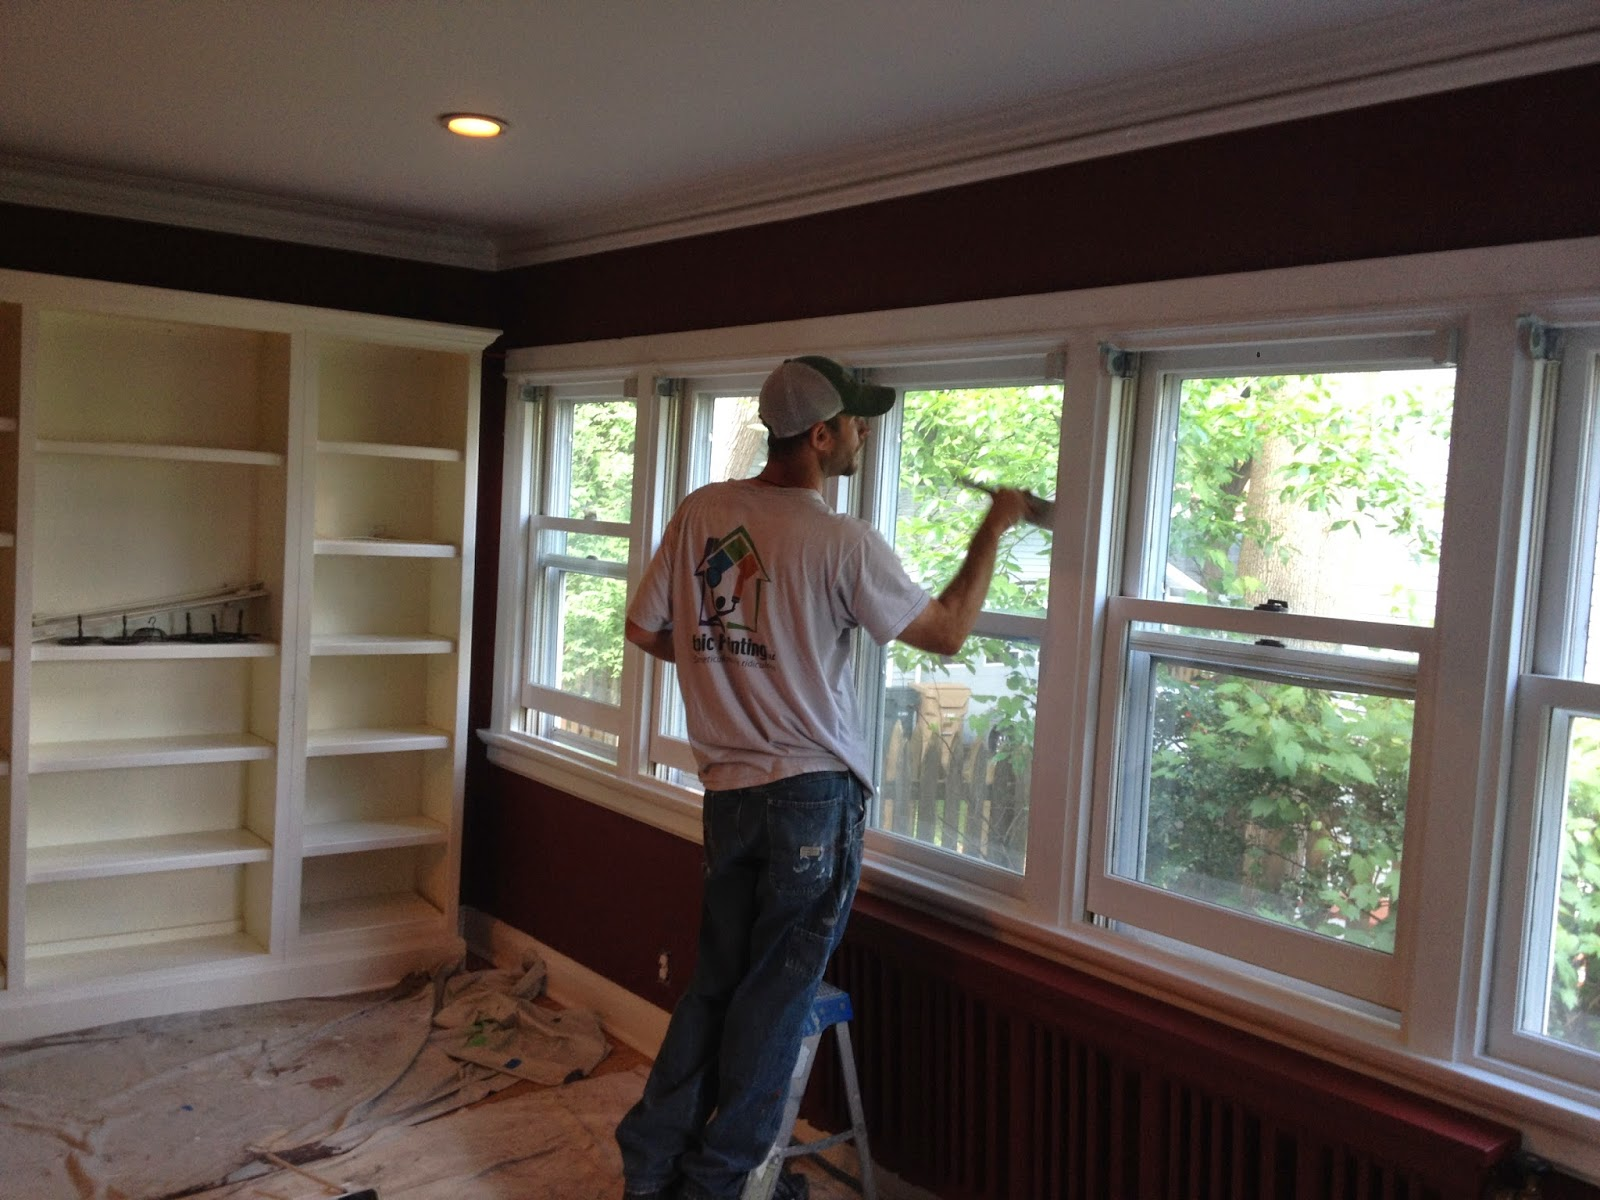 http://www.epic-painting.com/2014/06/11/interior-painting-company/